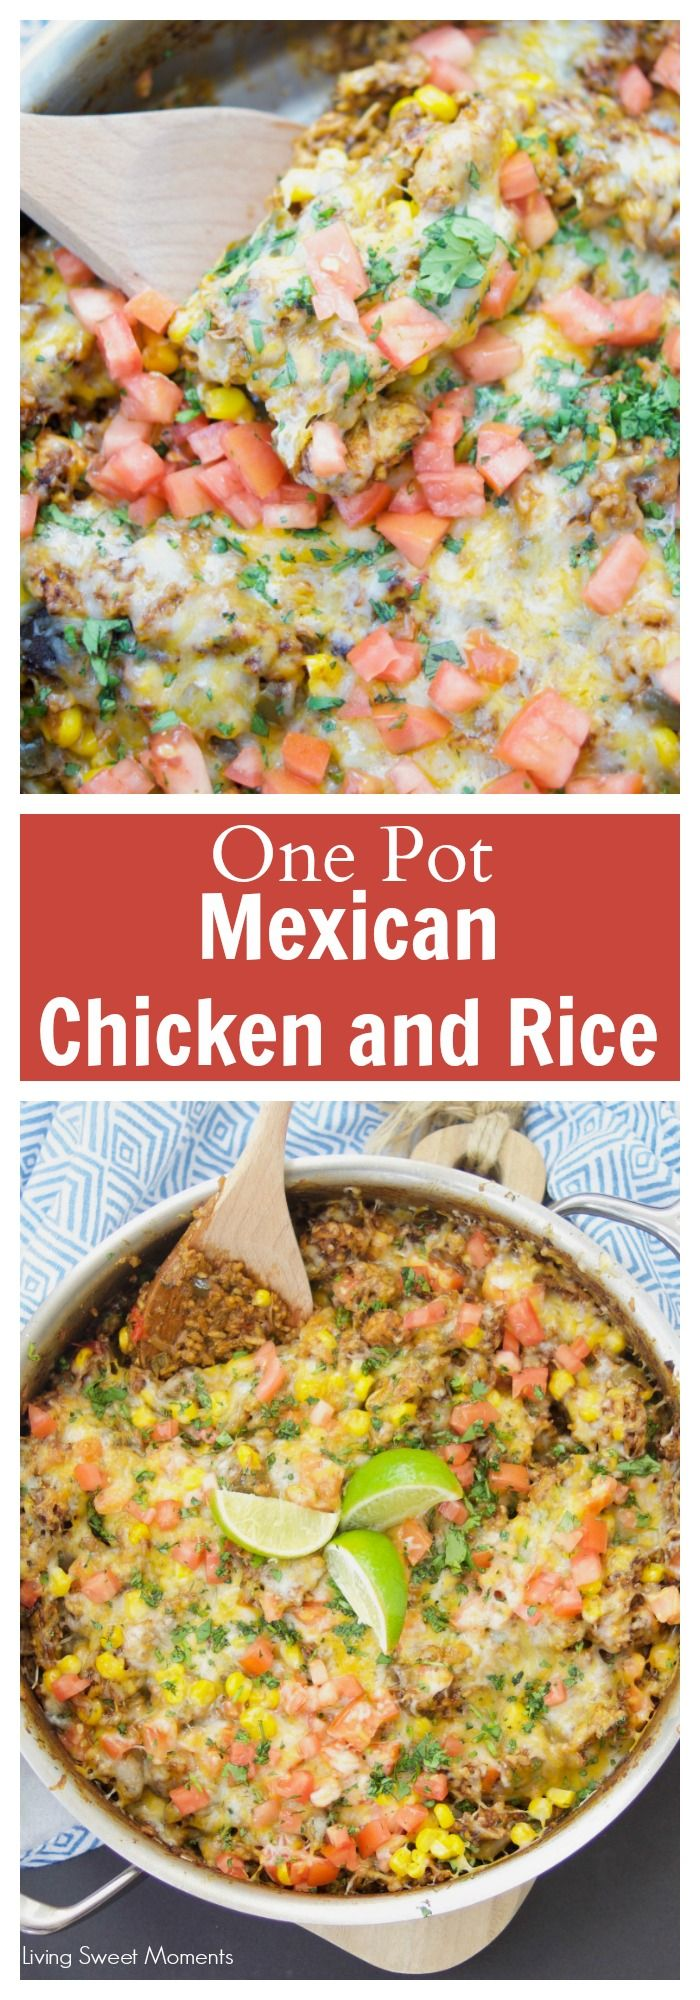 This amazing one pot cheesy Mexican Chicken And Rice recipe is made with authentic Mexican Mole sauce & topped with sesame seeds, for a quick 30-minute meal. More one pot meals at livingsweetmoments.com via @Livingsmoments #ad #MoleEveryday #DonaMariaMole